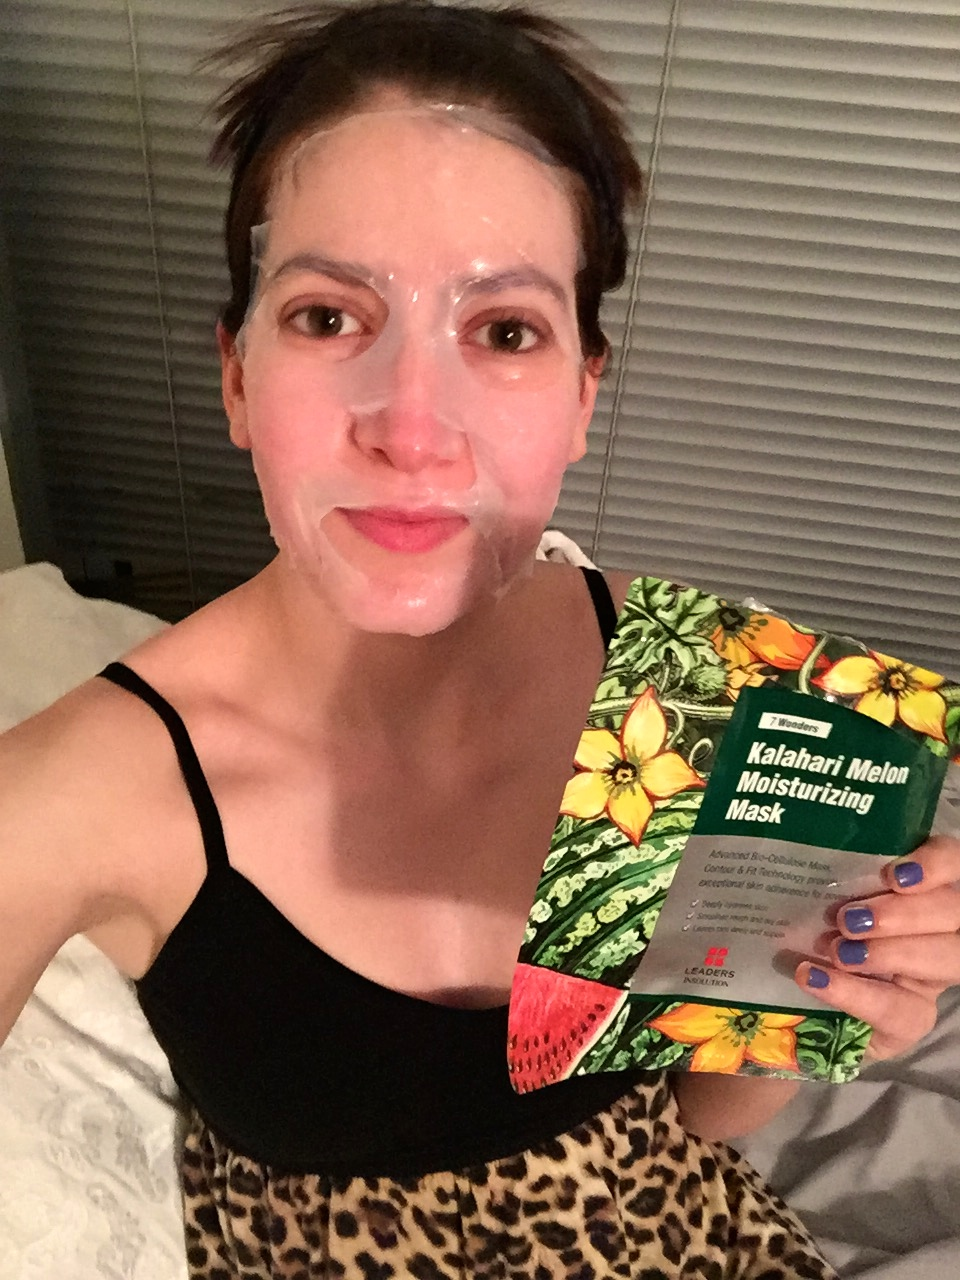 Review + Giveaway: Leaders Masks